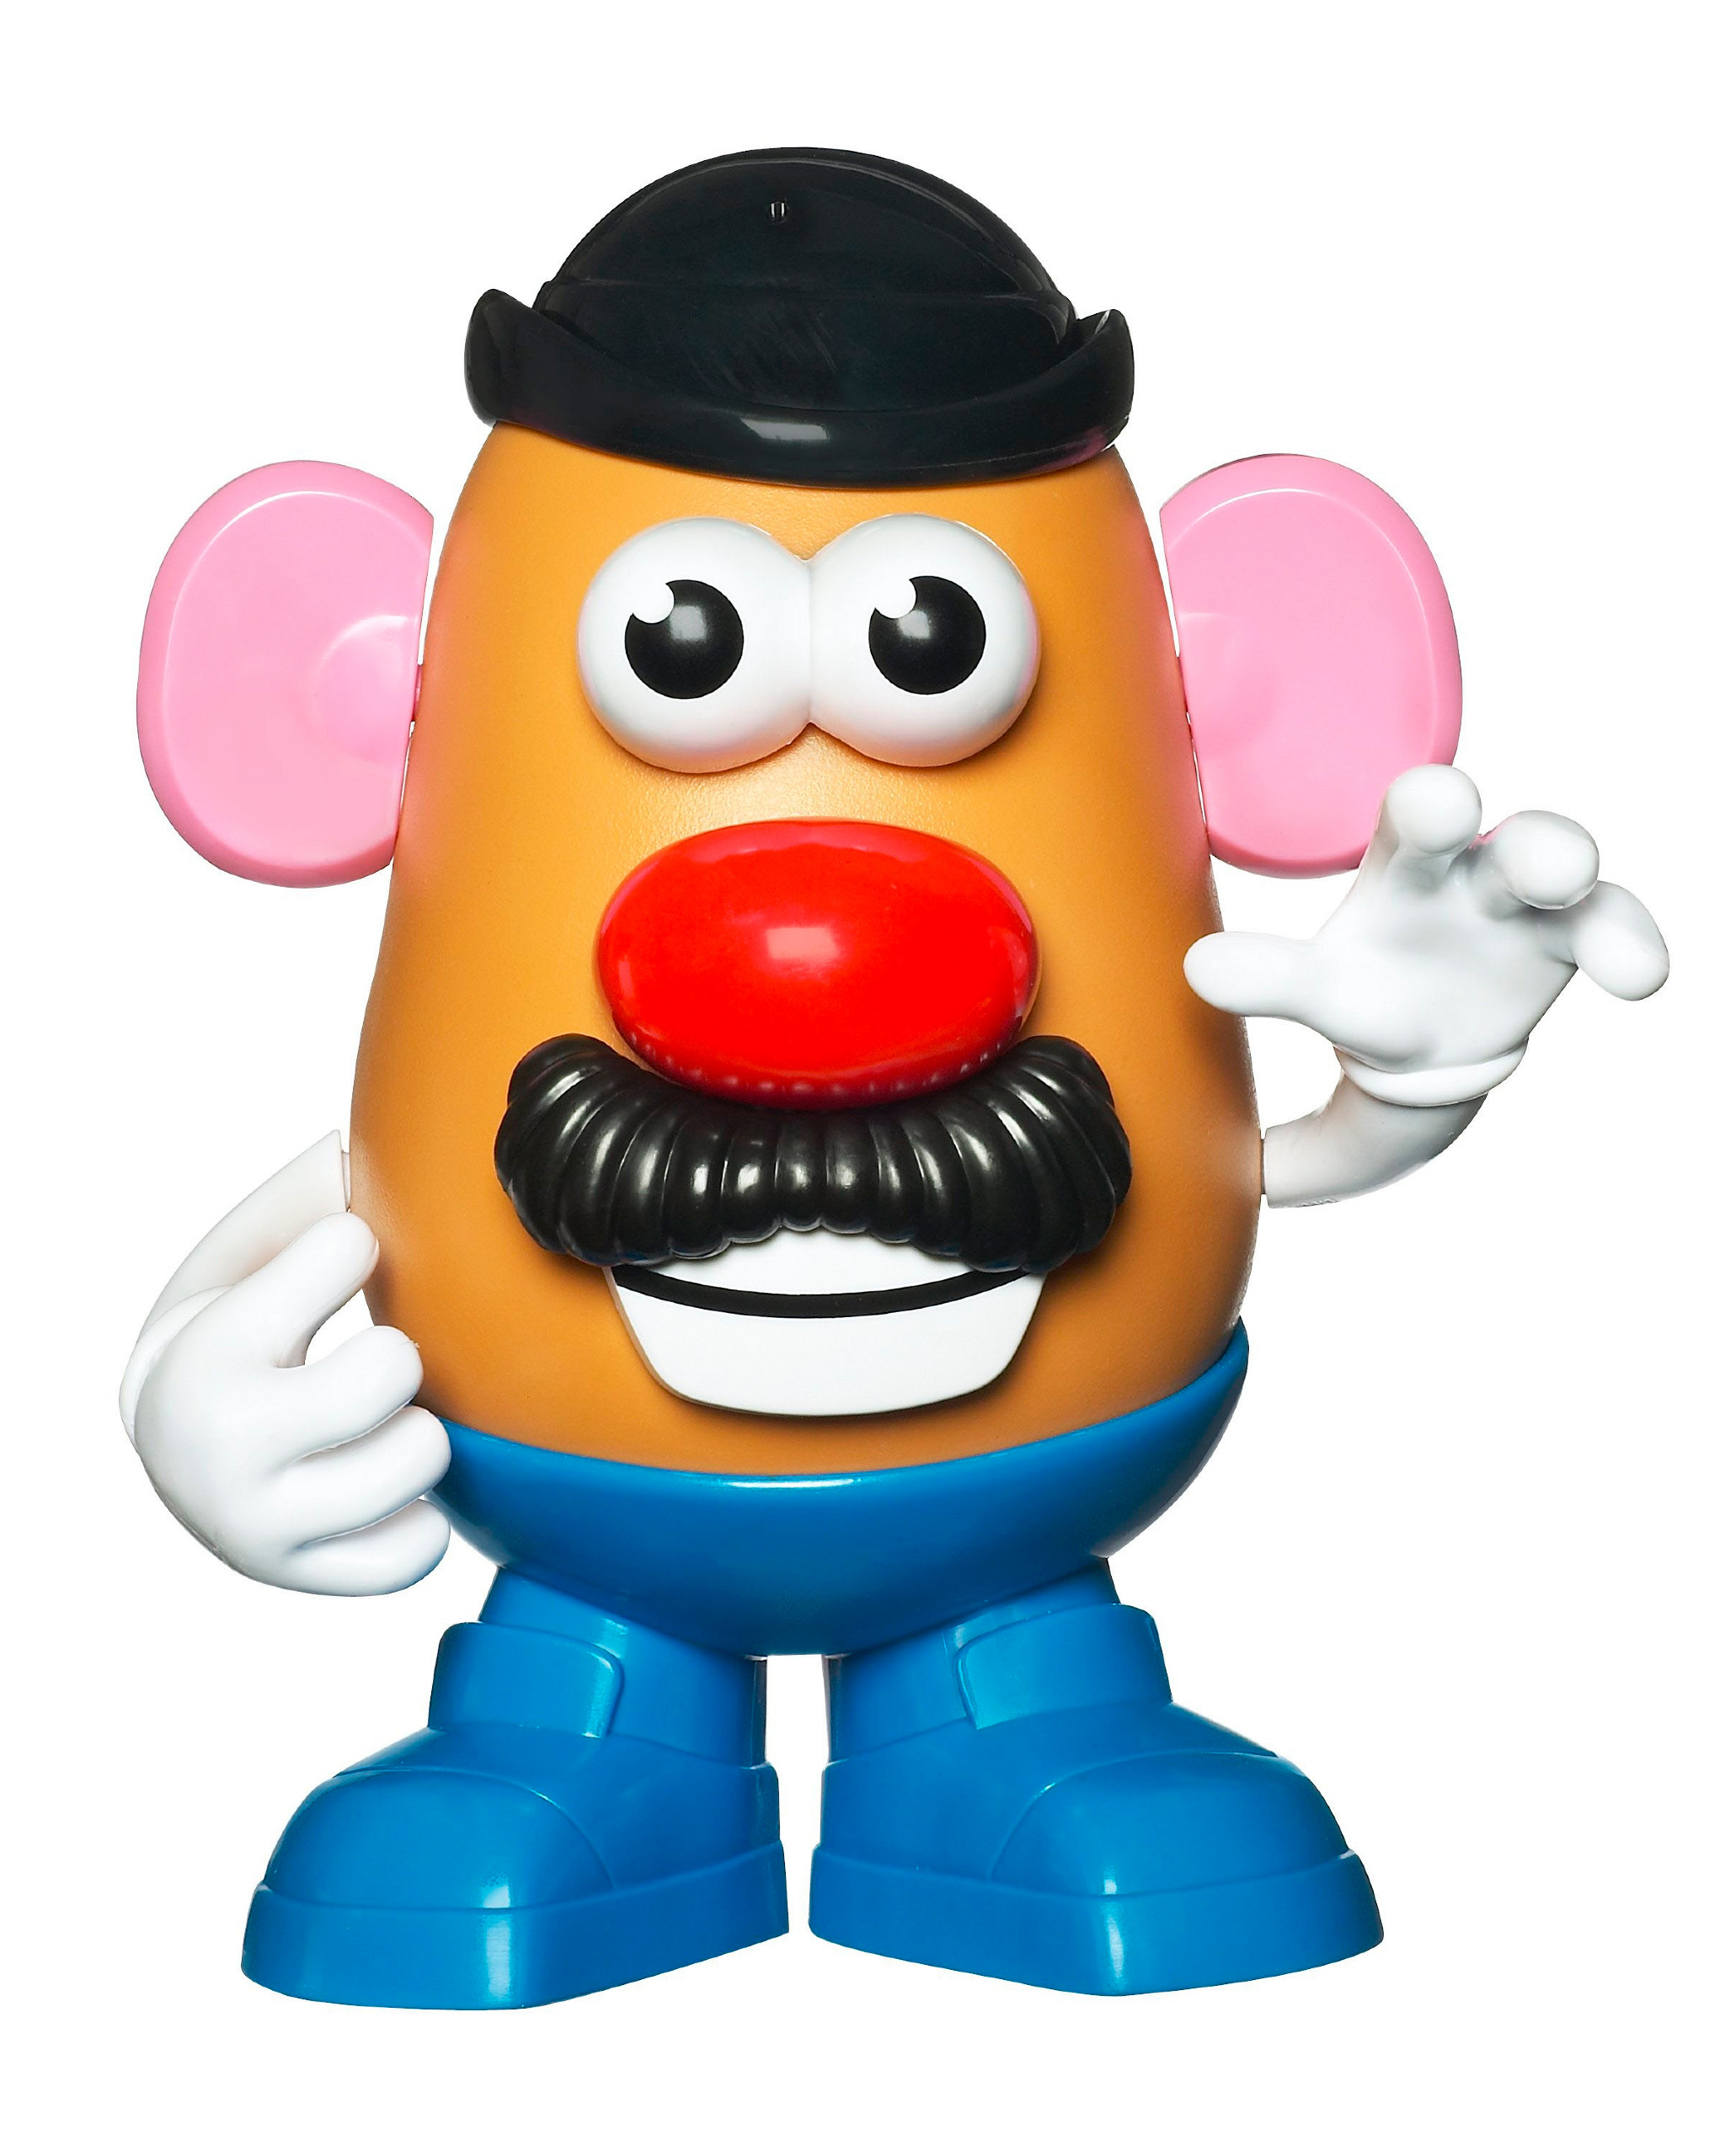 Mr-Mrs-Potato-Head-Hasbro-3.jpg